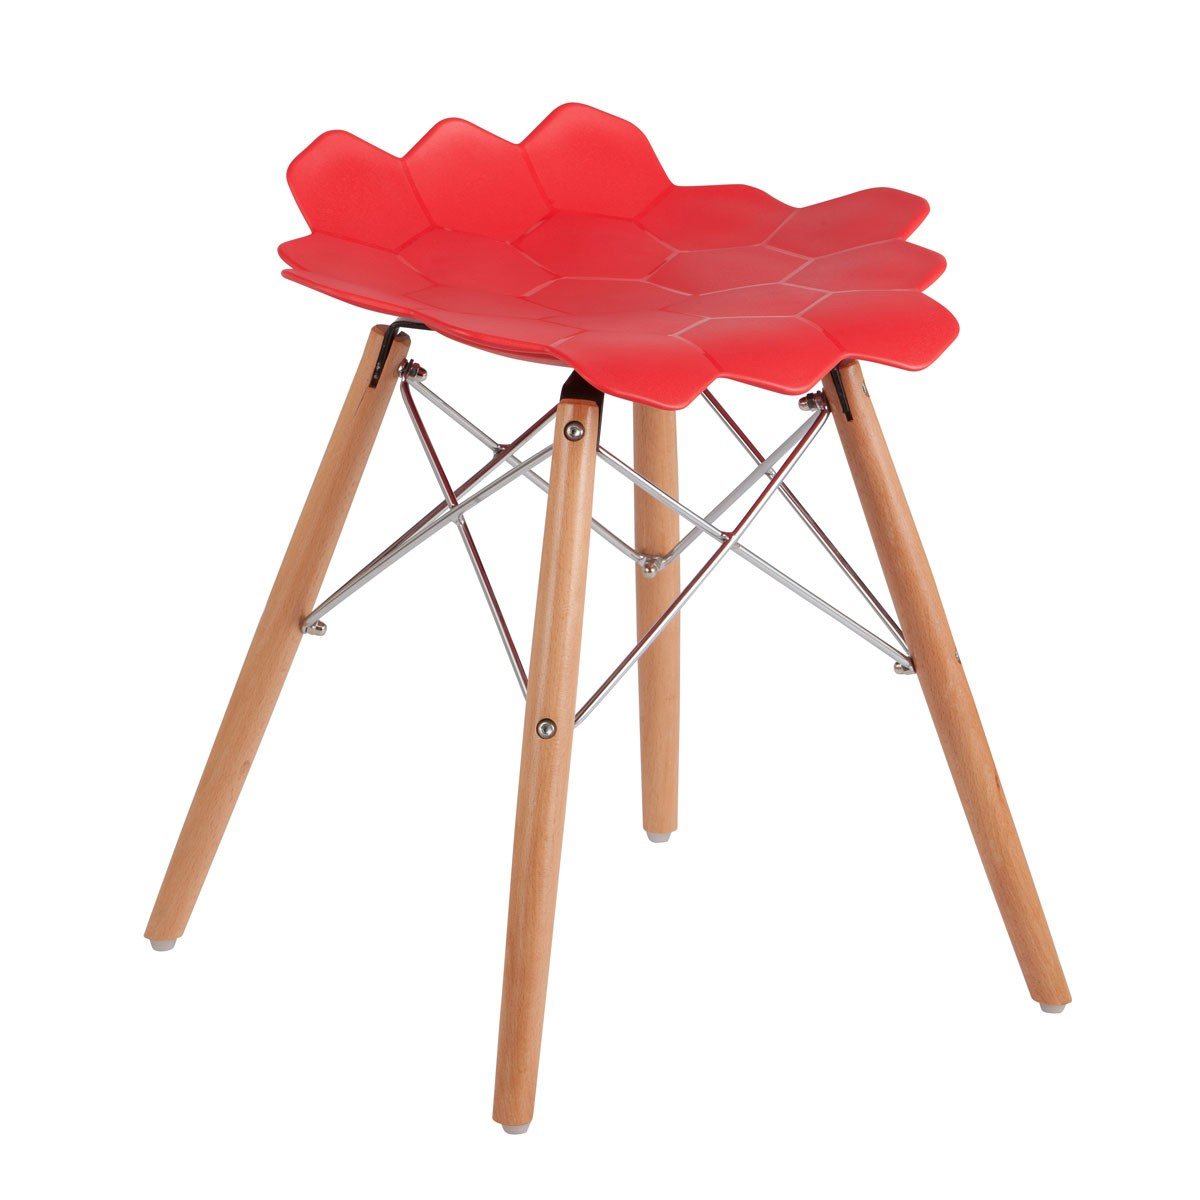 Molded Plastic Chair in Red with Wood Legs - (YMG-9211-1)